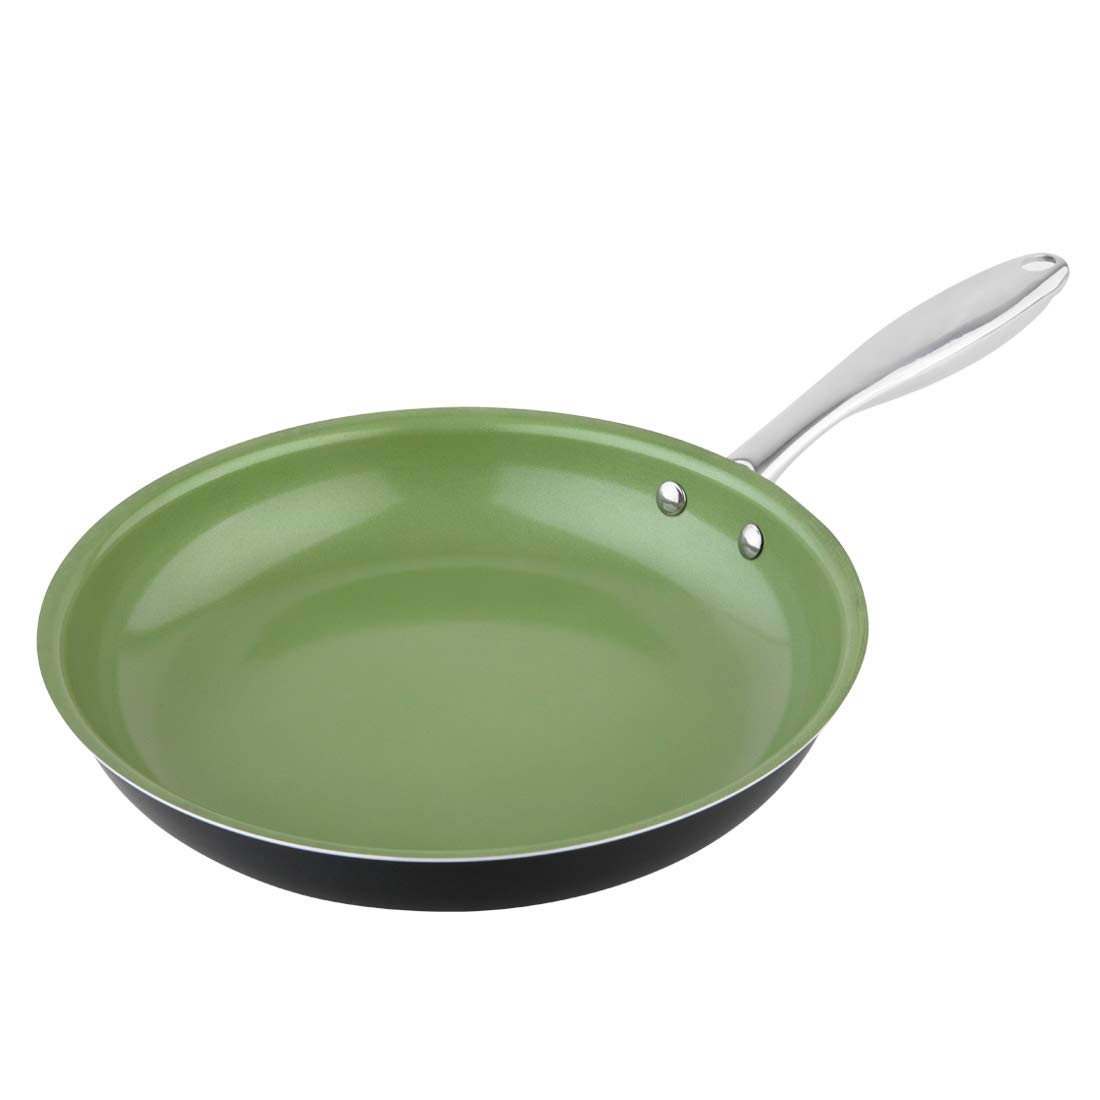 MICHELANGELO Ceramic Fry Pan with Ultra Nonstick Titanium Coating, Non toxic Green Pan, Green Frying Pan Nonstick, Orgreenic Fry Pan, Ceramic Nonstick Pan 11 Inch, Induction Compatible - 11 Inch